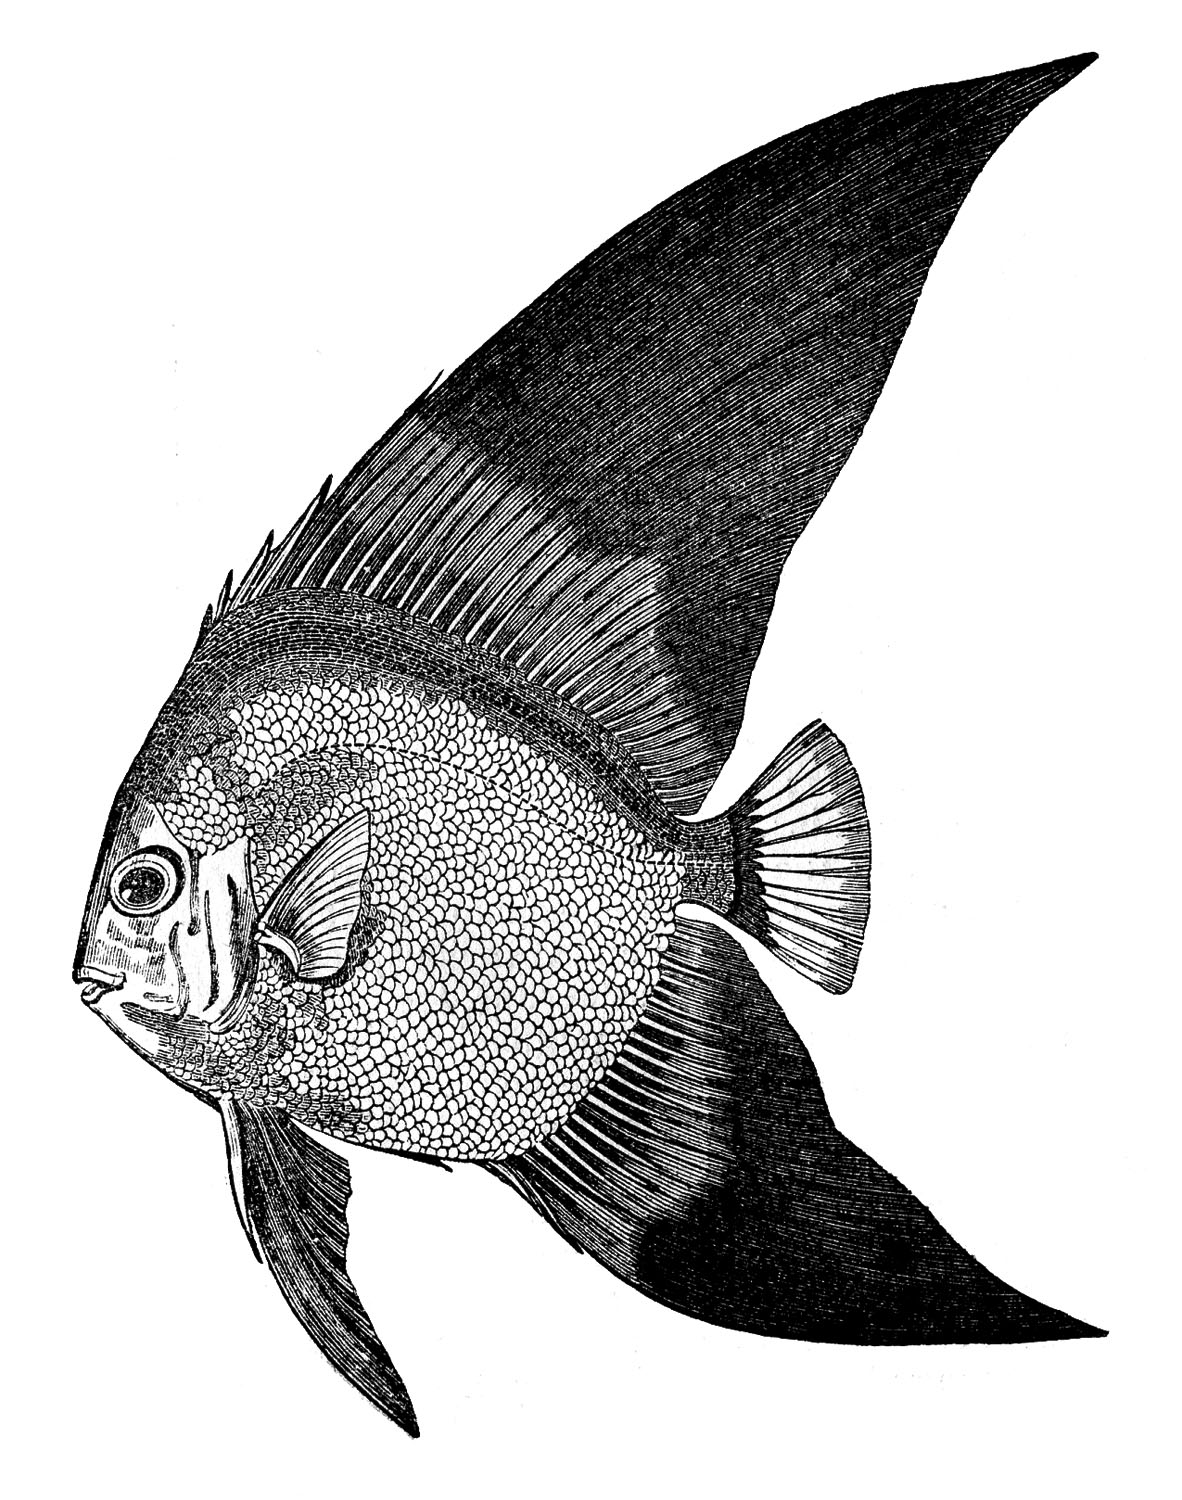 Vintage clip art fish engravings the graphics fairy for Clip art fish